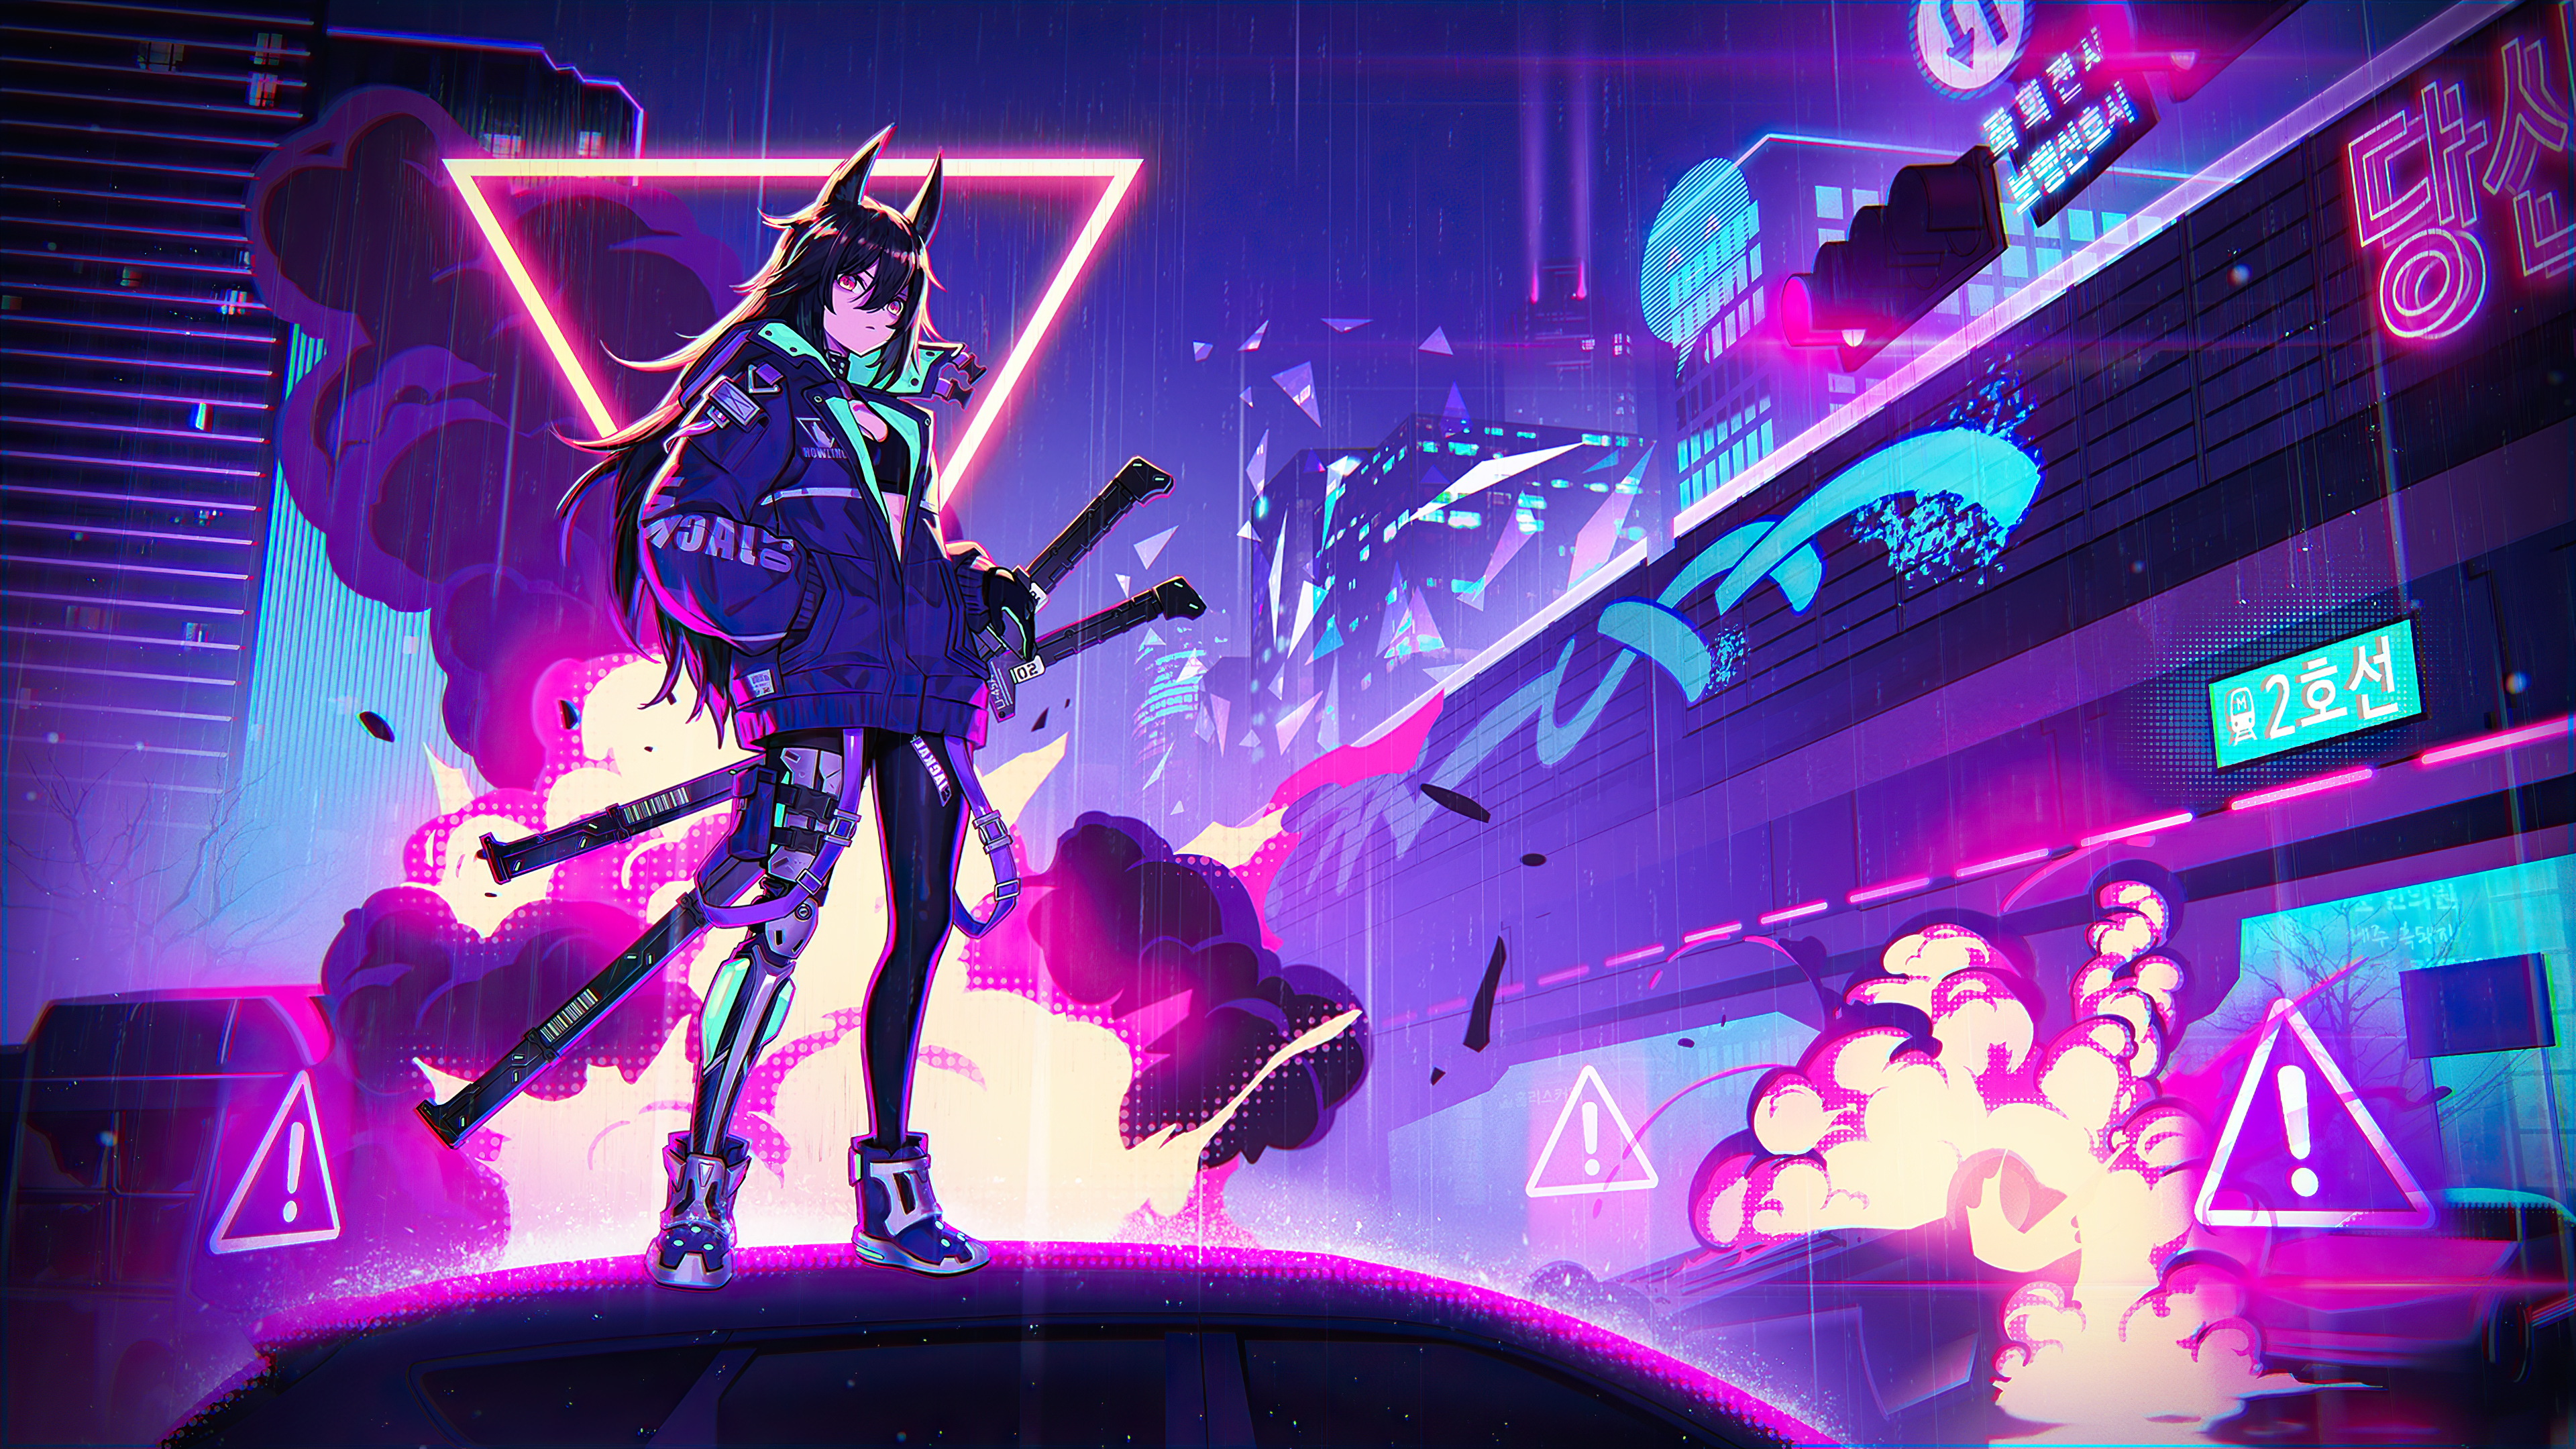 1366x768 Katana Anime Girl Neon 4k 1366x768 Resolution Hd 4k Wallpapers Images Backgrounds Photos And Pictures